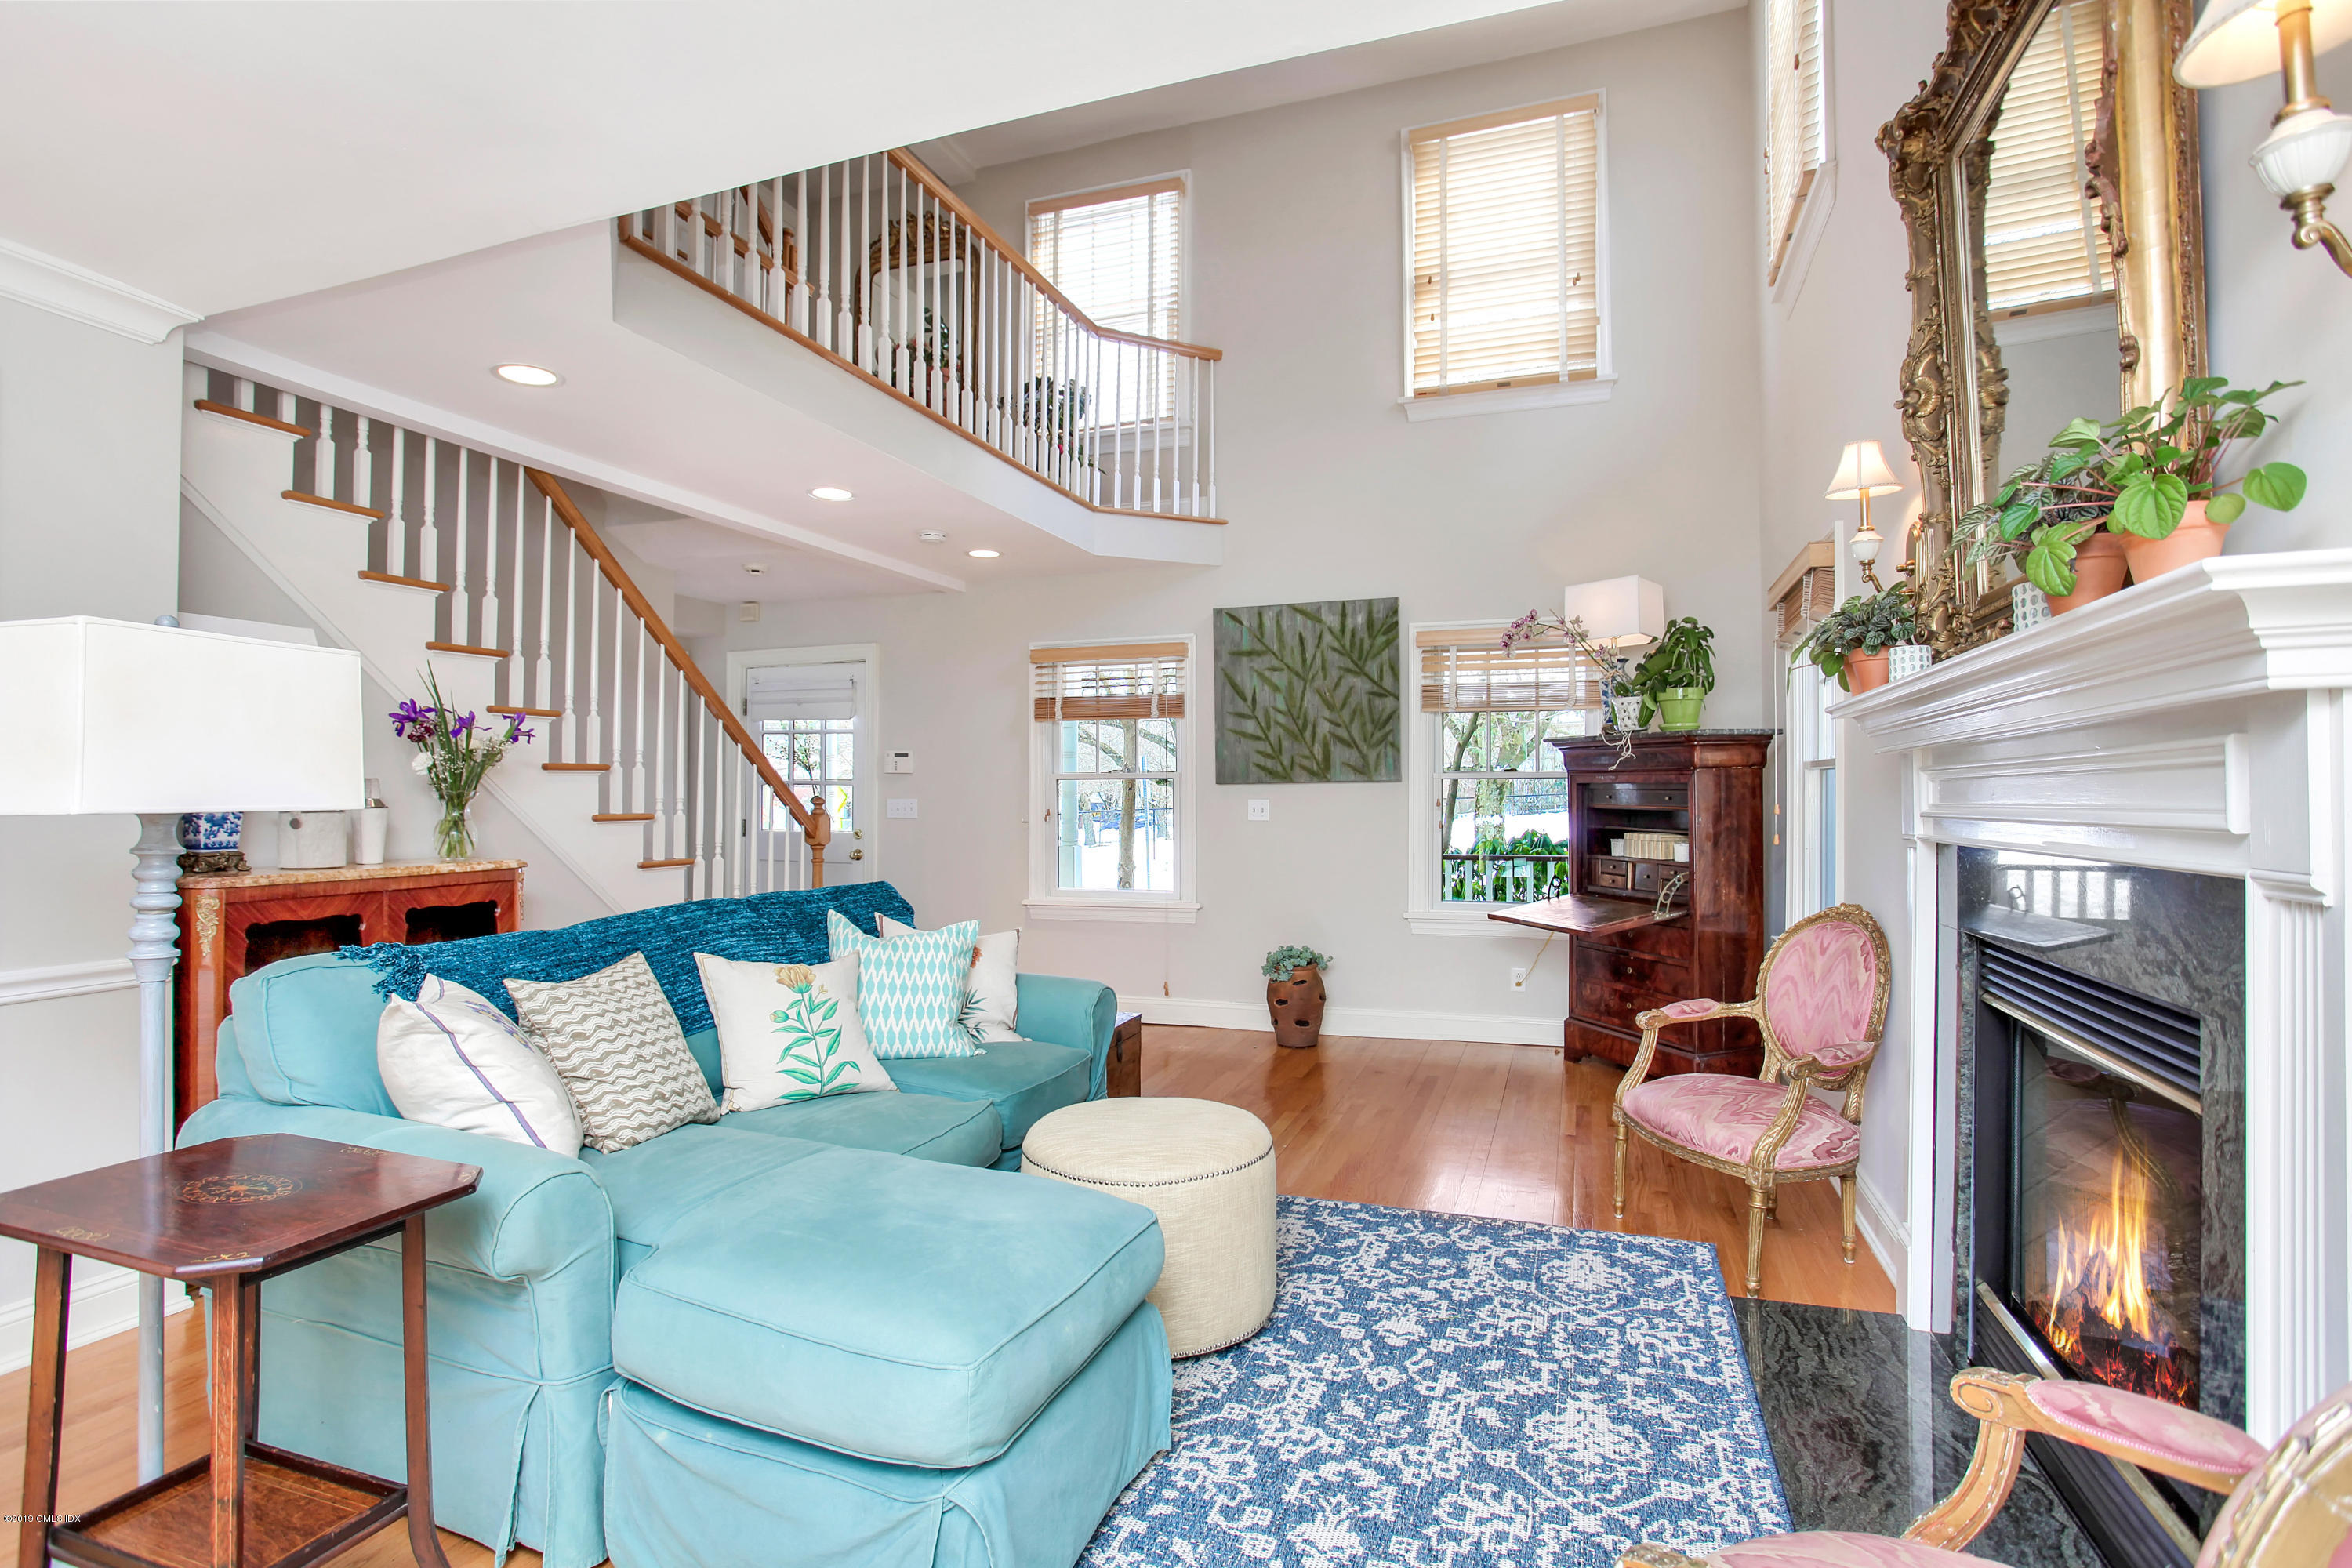 45 William Street,Greenwich,Connecticut 06830,3 Bedrooms Bedrooms,2 BathroomsBathrooms,Condominium,William,105736